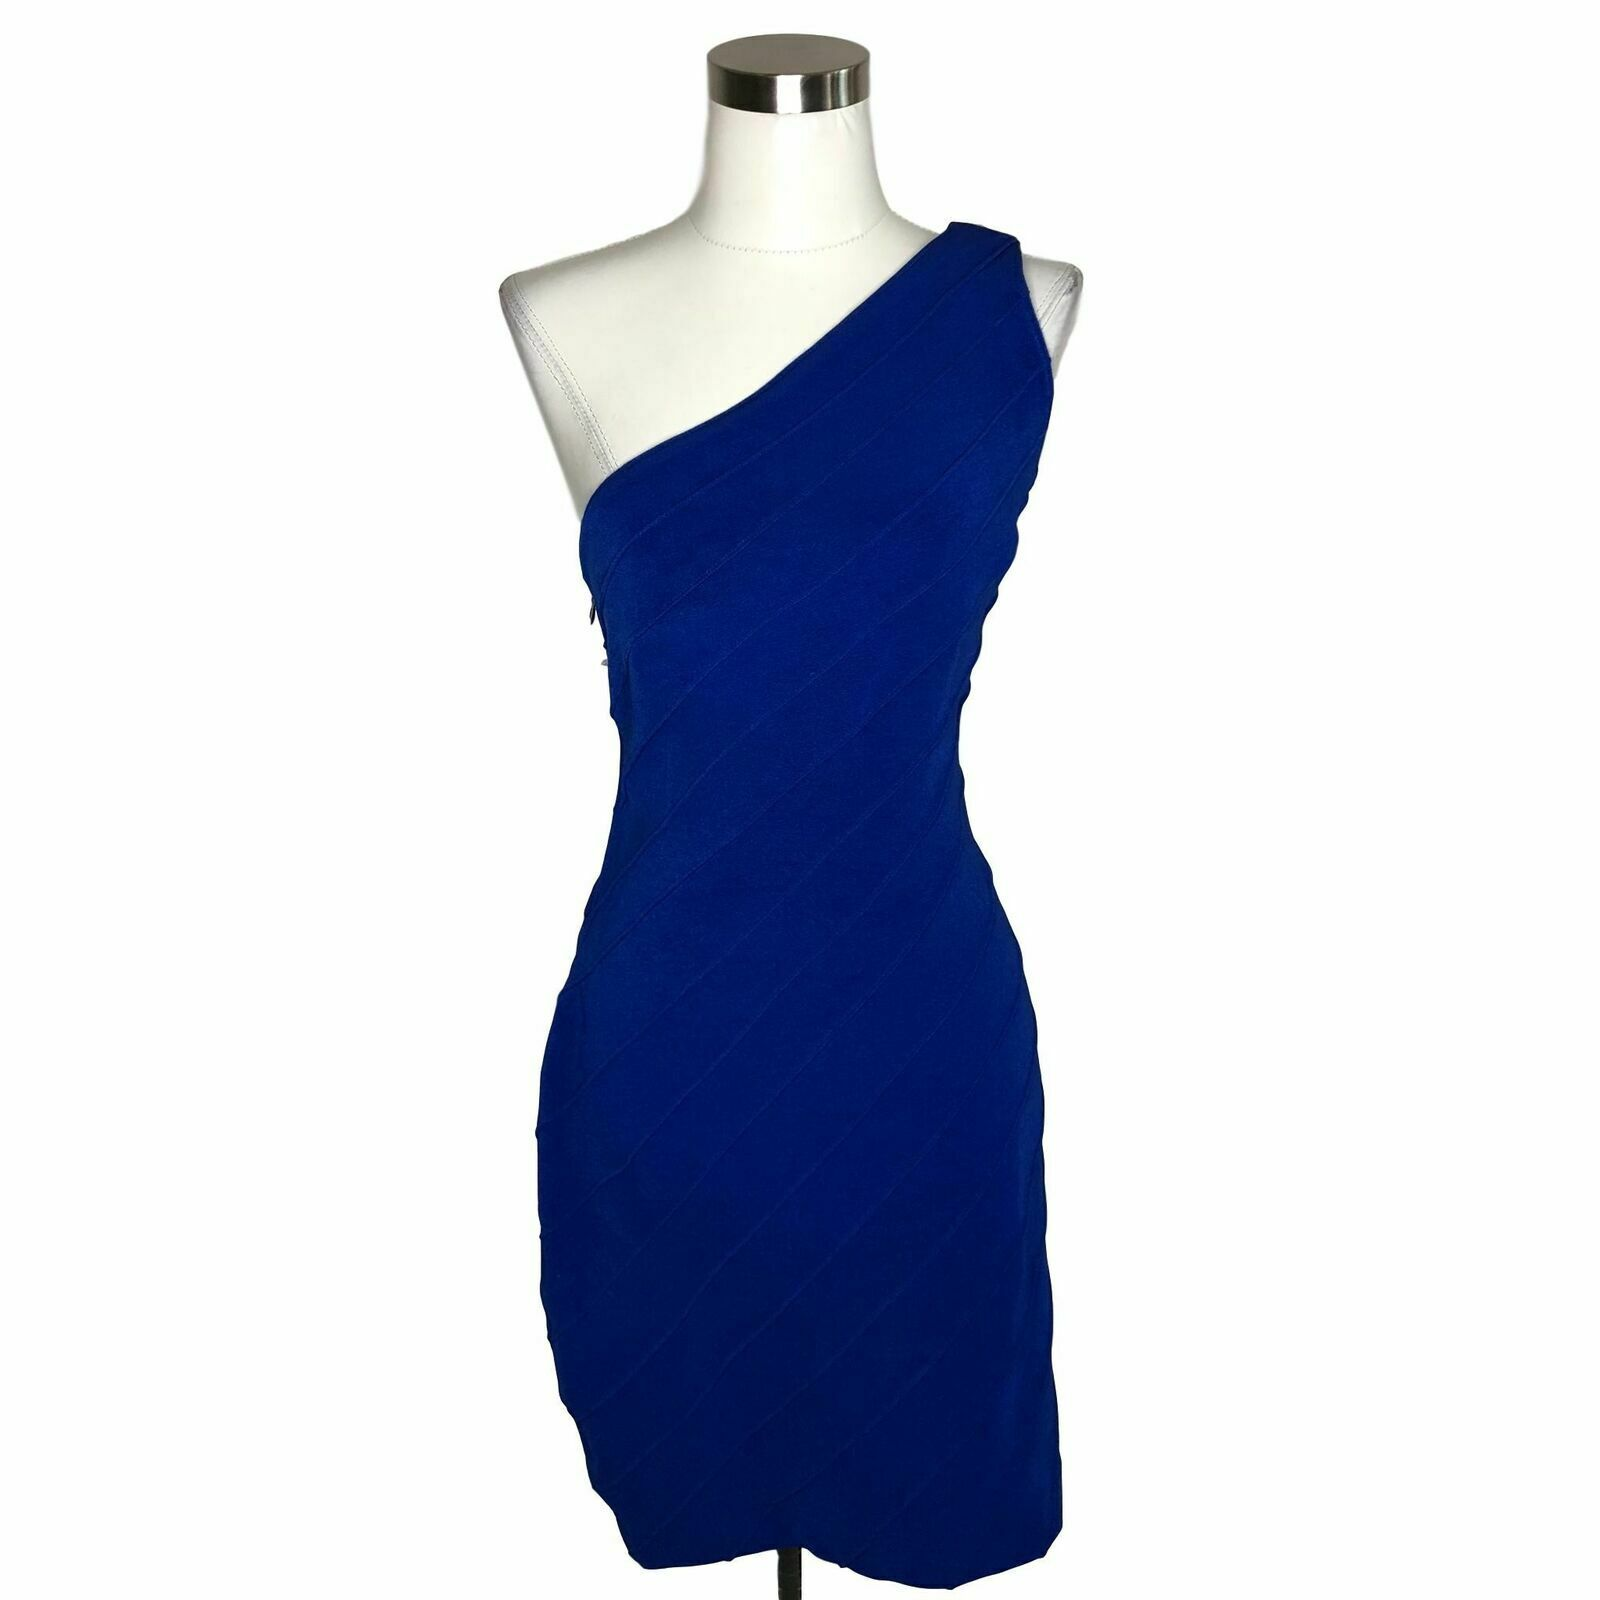 N496 NEW CACHE for TADASHI Vintage Dress Größe 12 Large Royal Blau Solid Bodycon